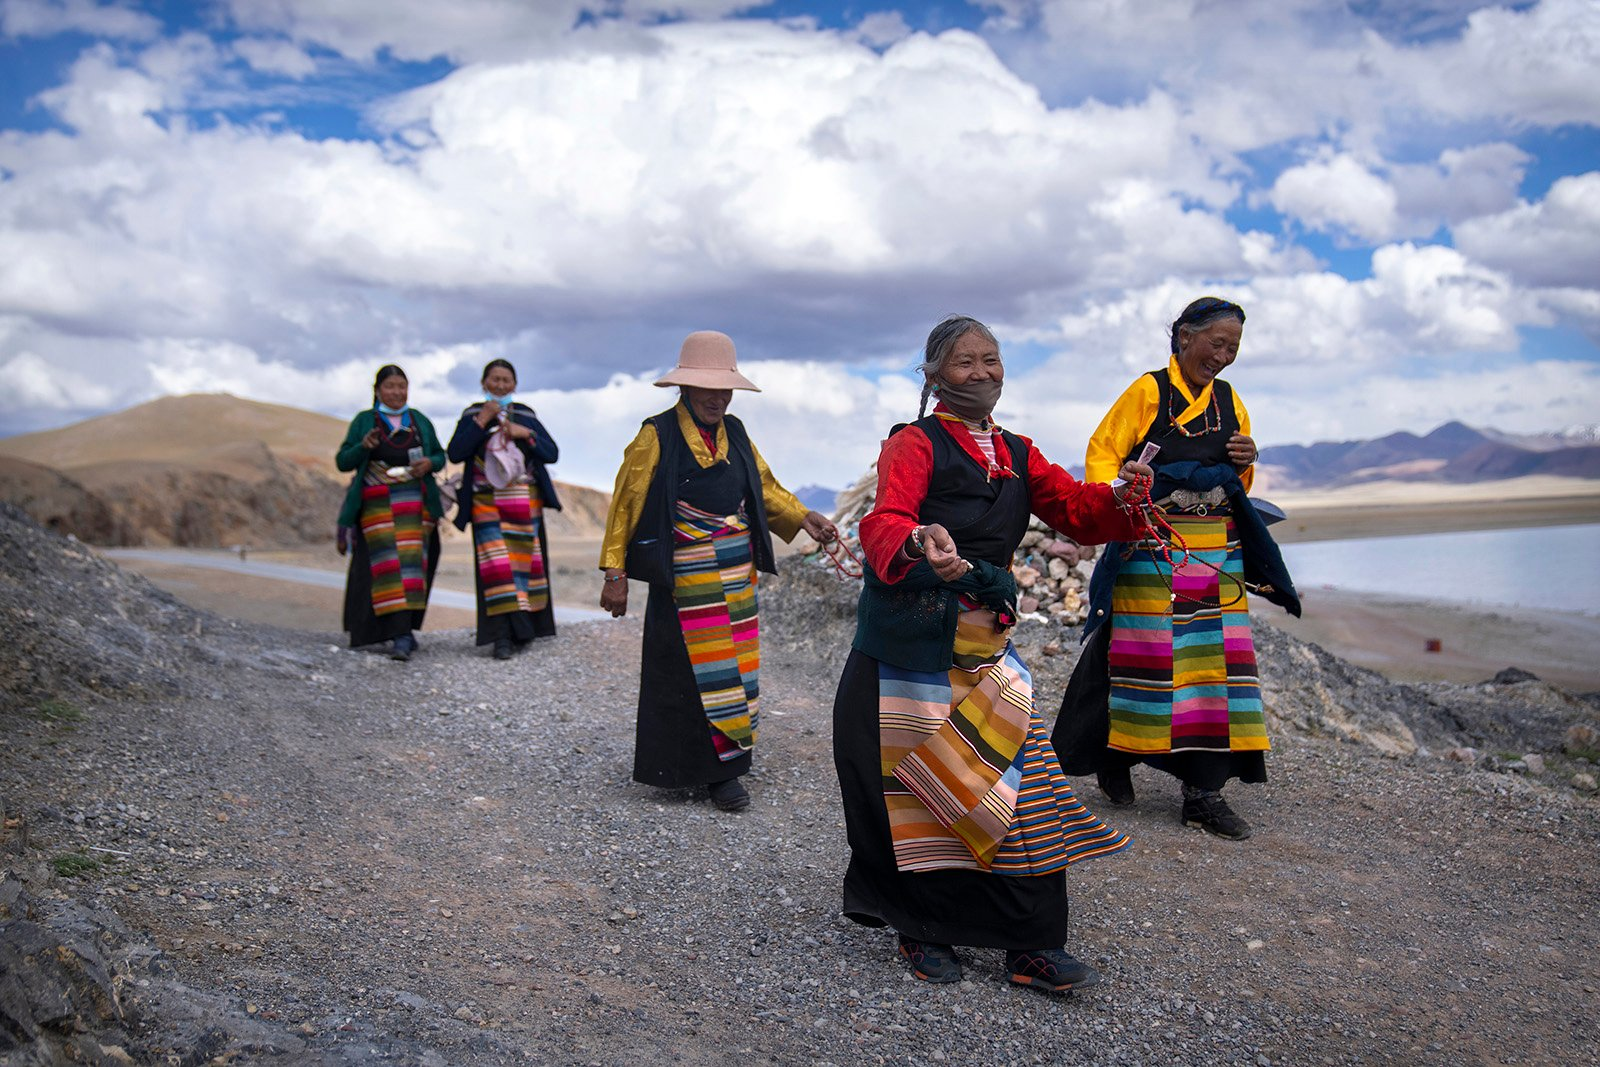 Tibetan women circumnavigate a Buddhist religious site in Namtso in western China's Tibet Autonomous Region, as seen during a government organized visit for foreign journalists, Wednesday, June 2, 2021. (AP Photo/Mark Schiefelbein)